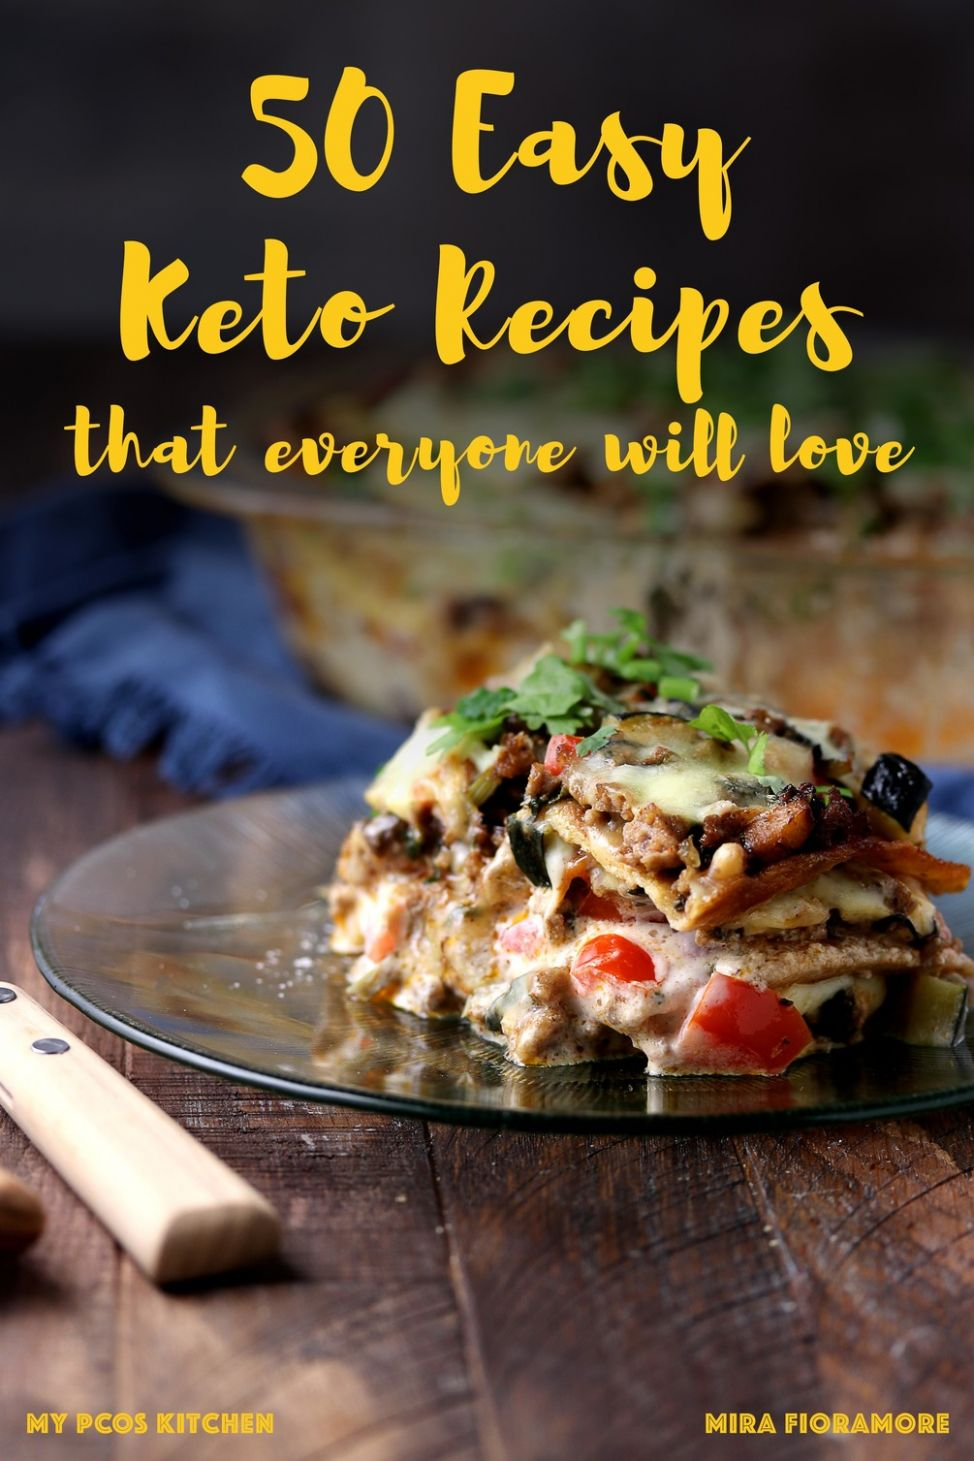 11 Easy Keto Recipes Everyone will Love - Easy Recipes Everyone Will Love